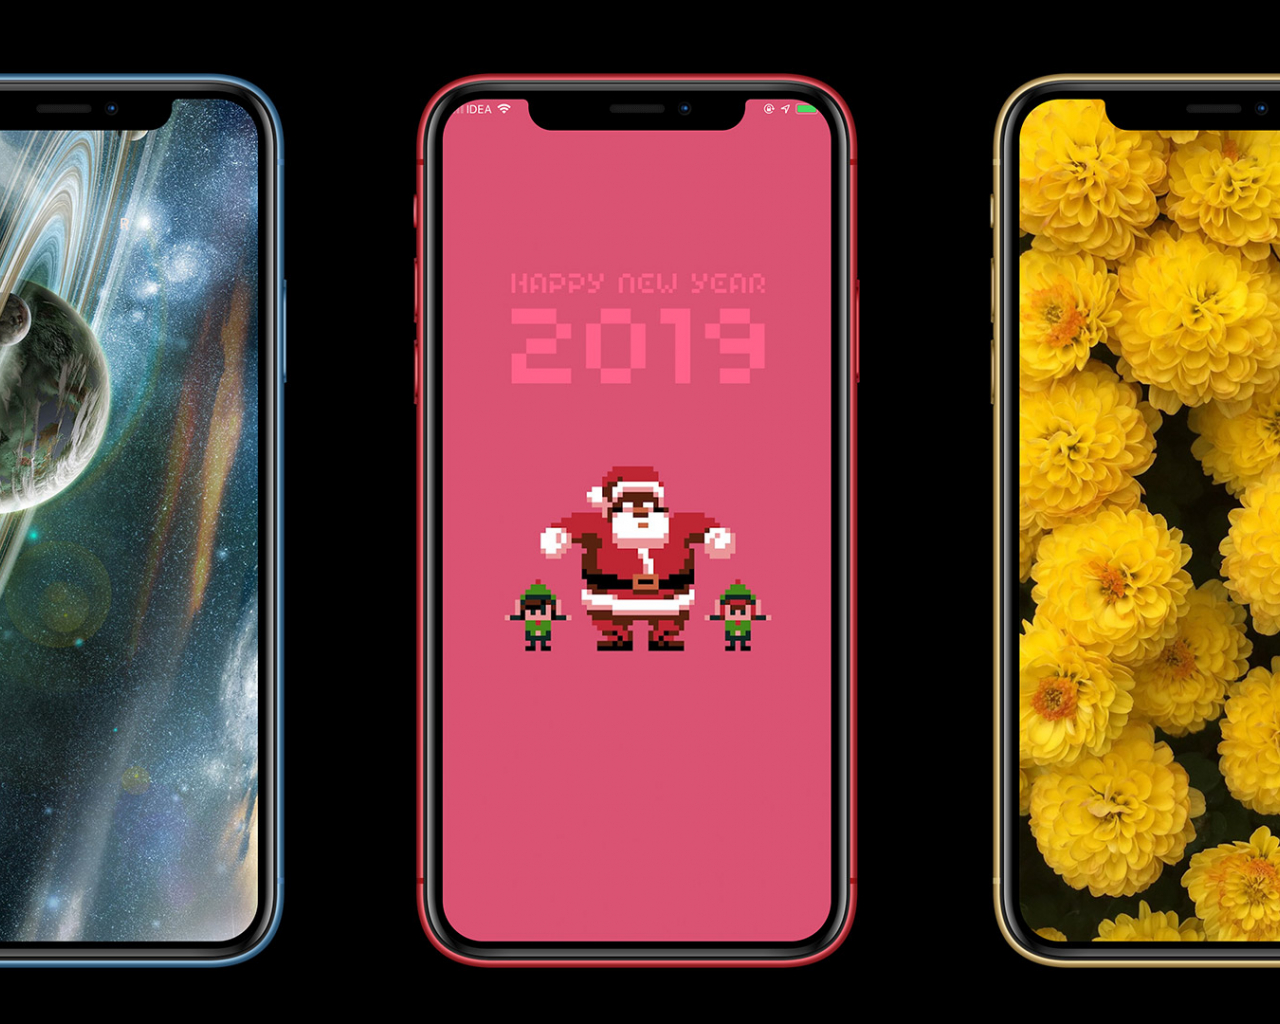 Free download Best iPhone XR Wallpaper Apps in 21 Dynamic Images ...